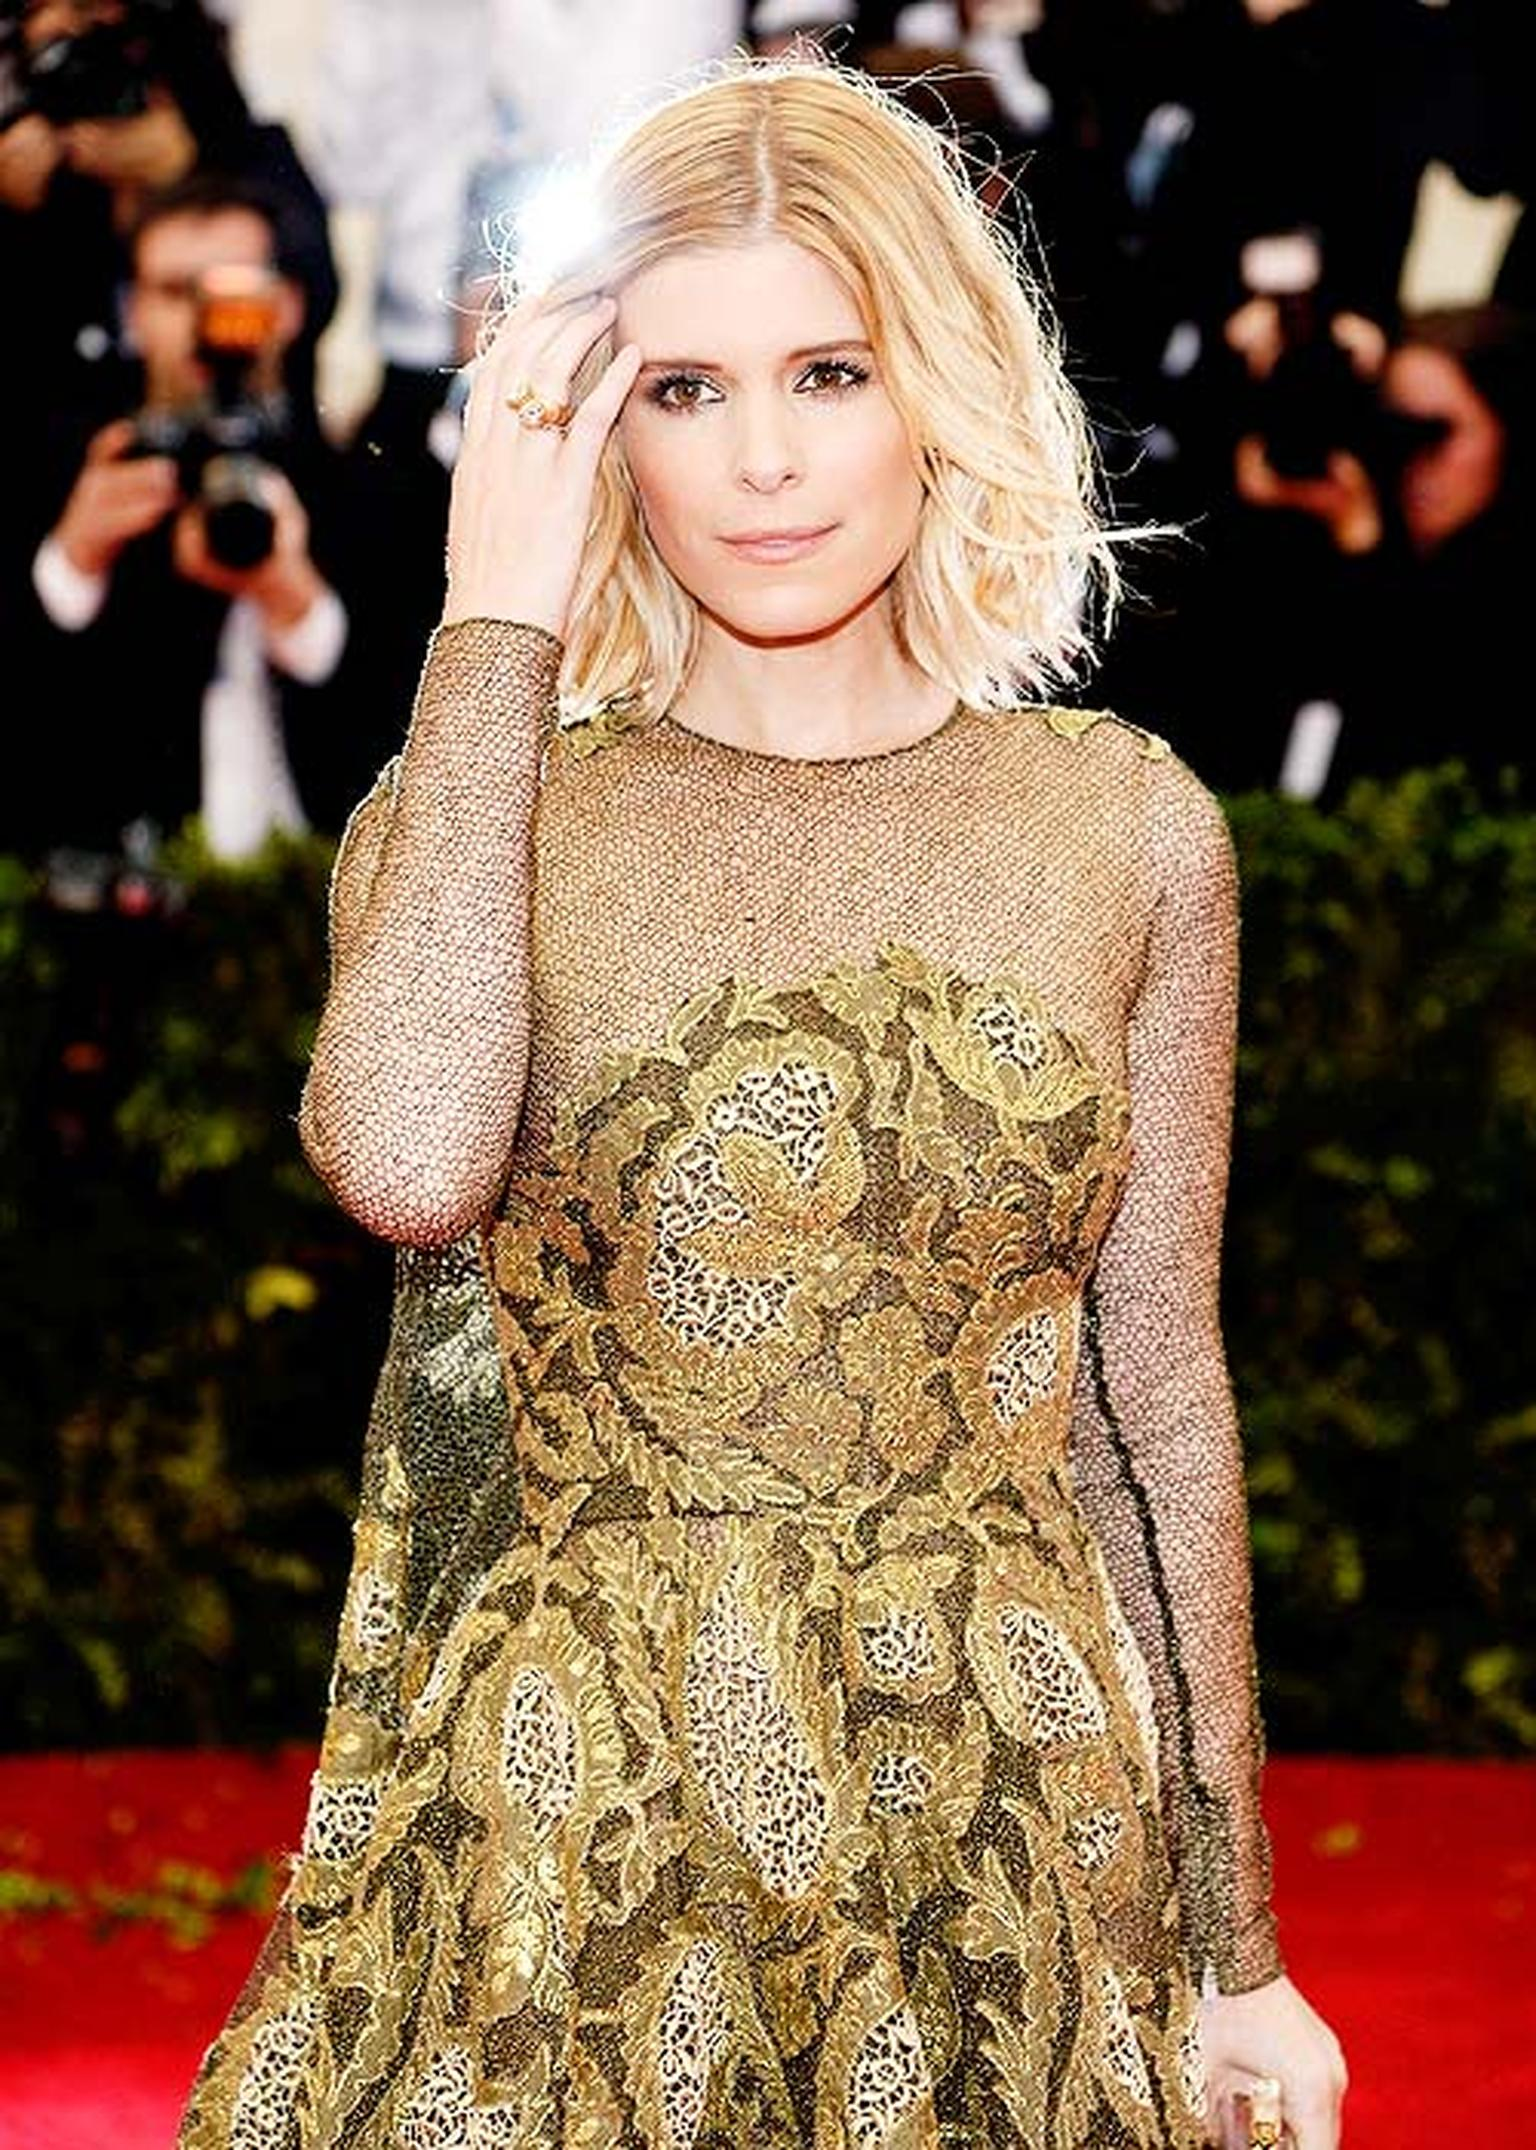 American actress Kate Mara looked glamorous in green and gold, paired with a Cartier Tradition ring in yellow gold and diamond Cartier earrings